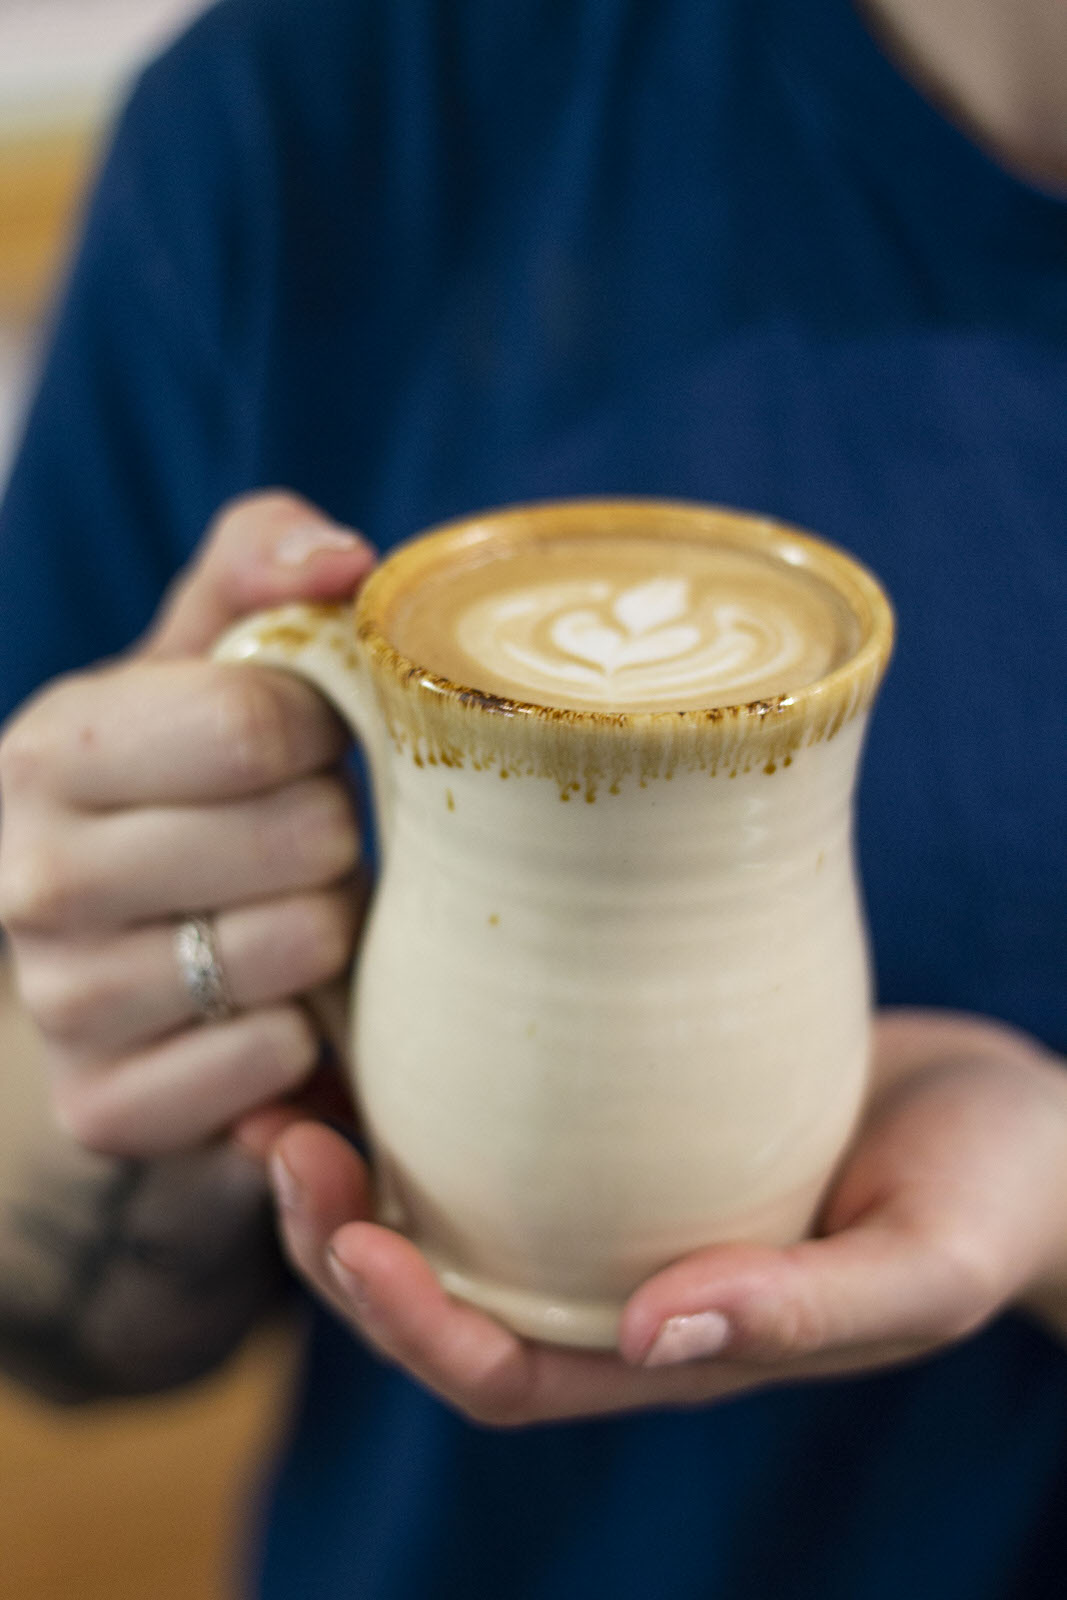 At Atwater's, our coffee is served in locally handmade mugs.